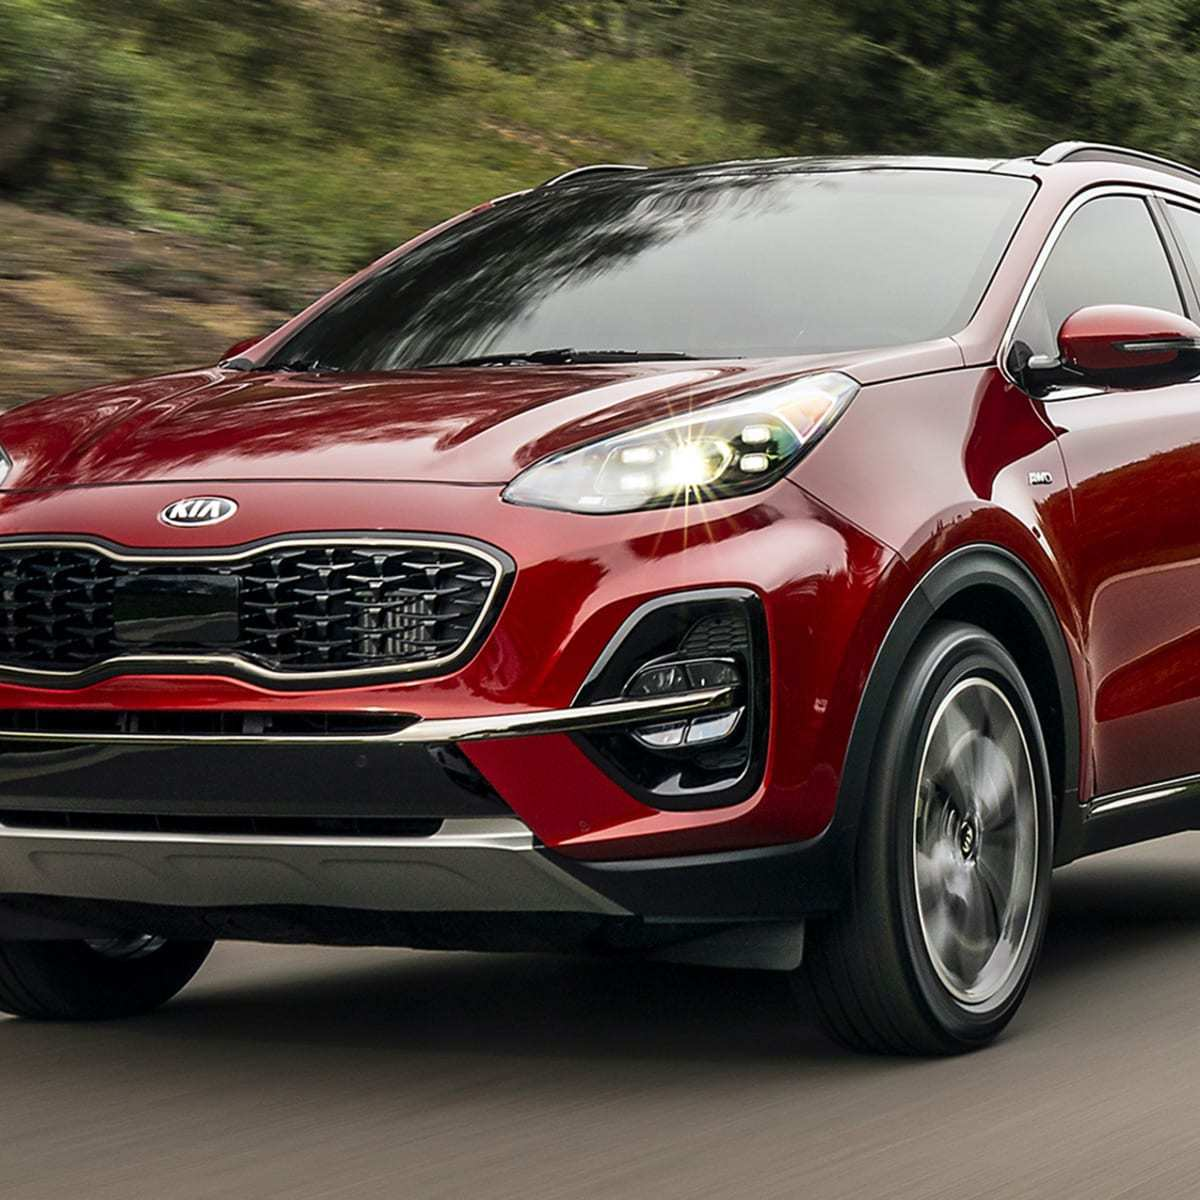 29 New 2020 Kia Vehicles Speed Test by 2020 Kia Vehicles